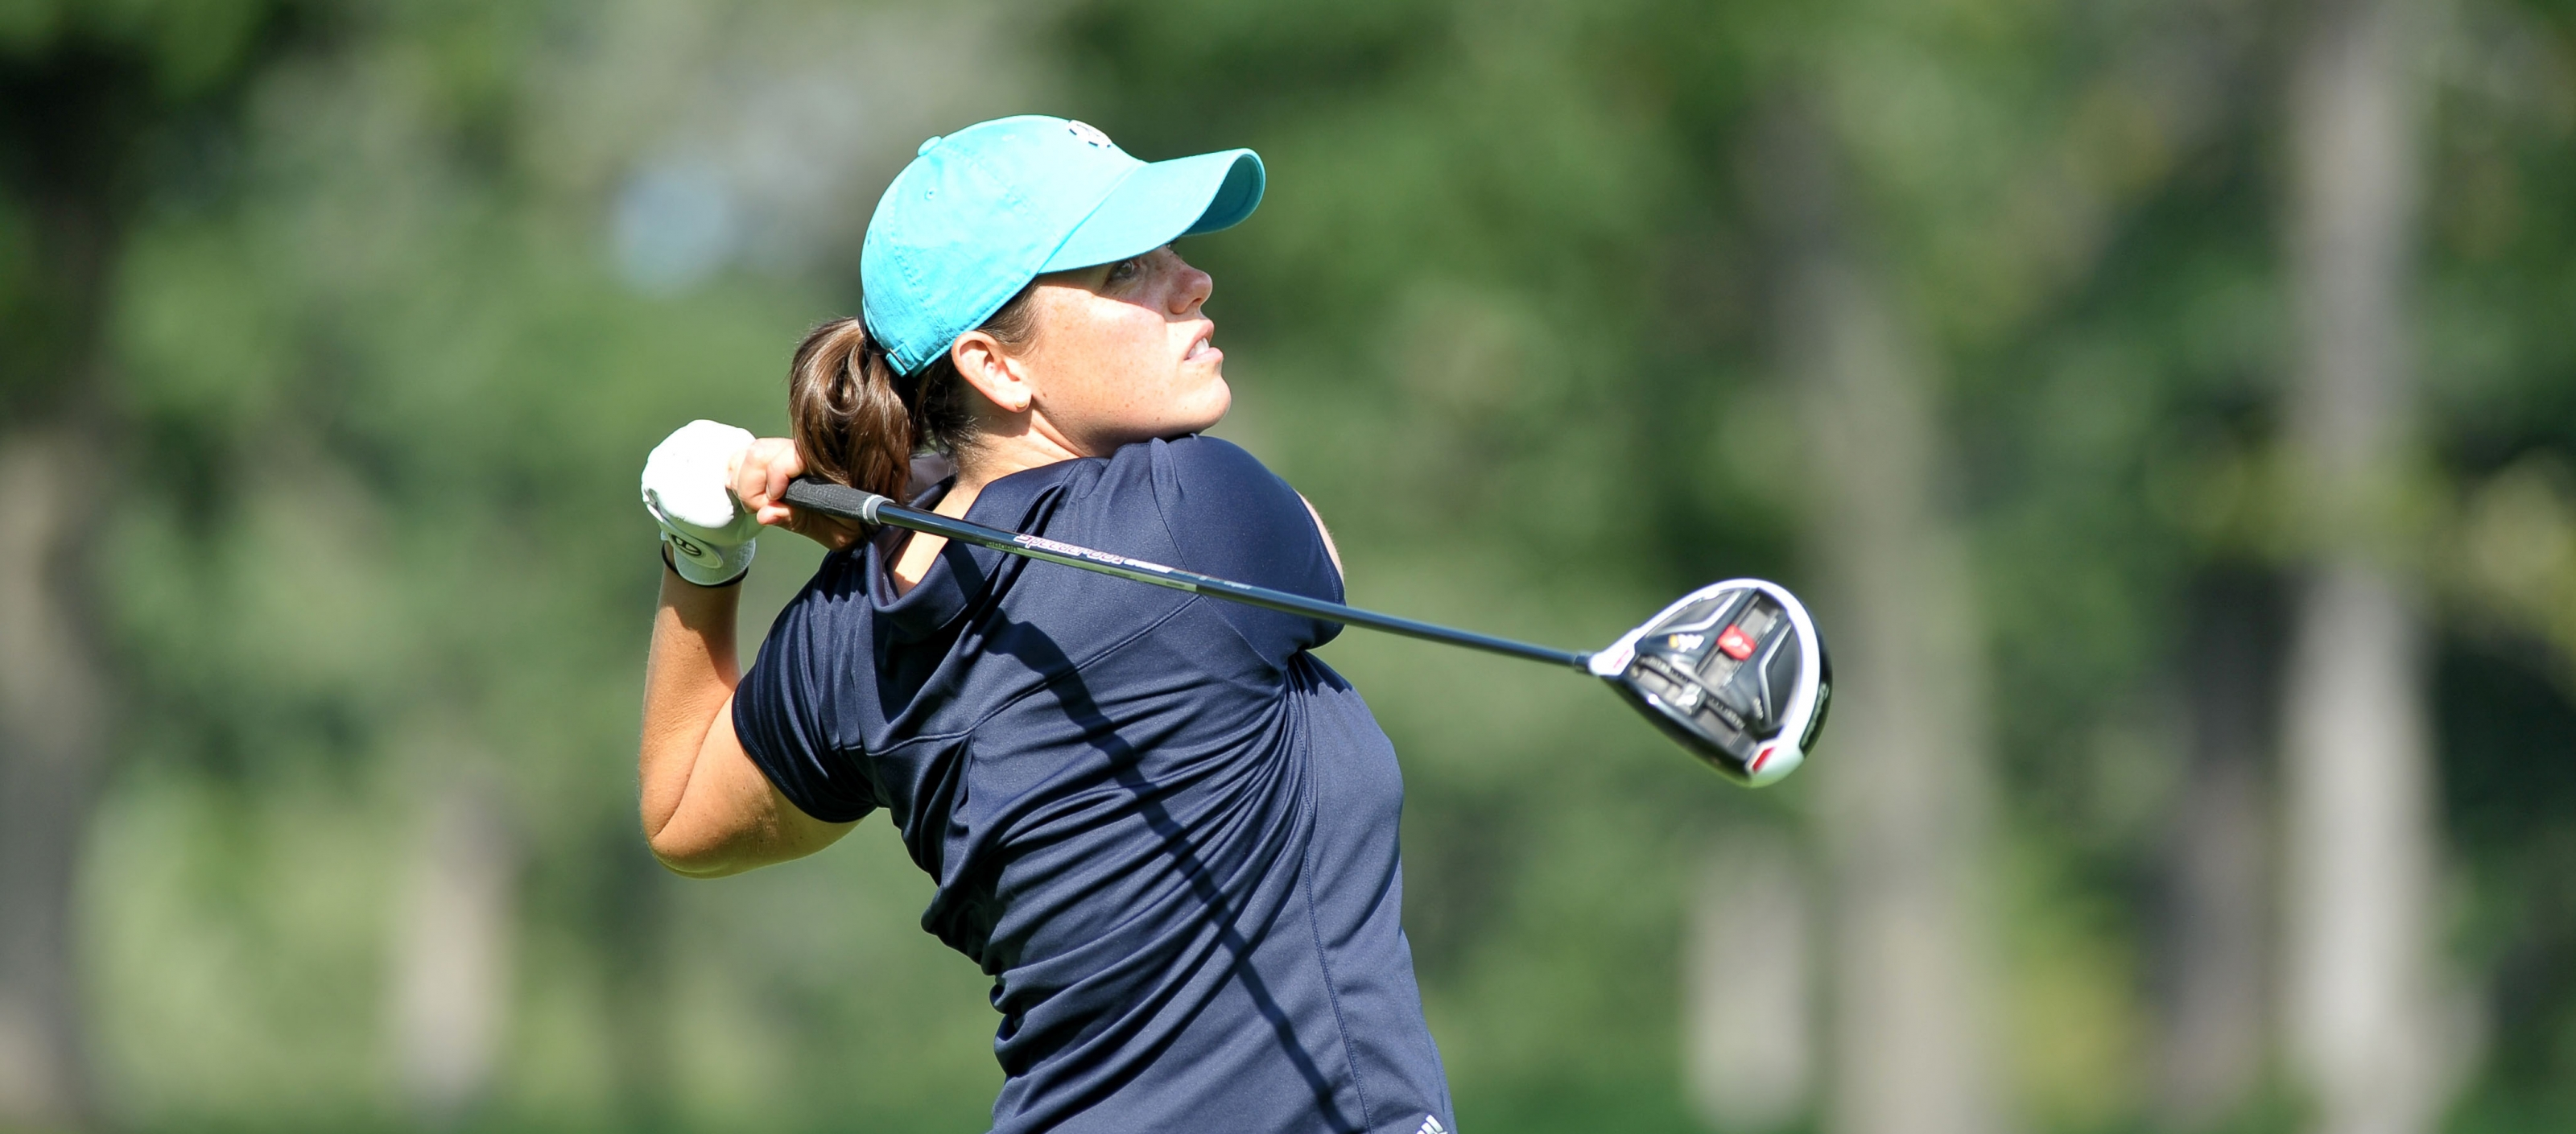 katie pius assistant pga professional at biltmore cc has 16 top 20 finishes in